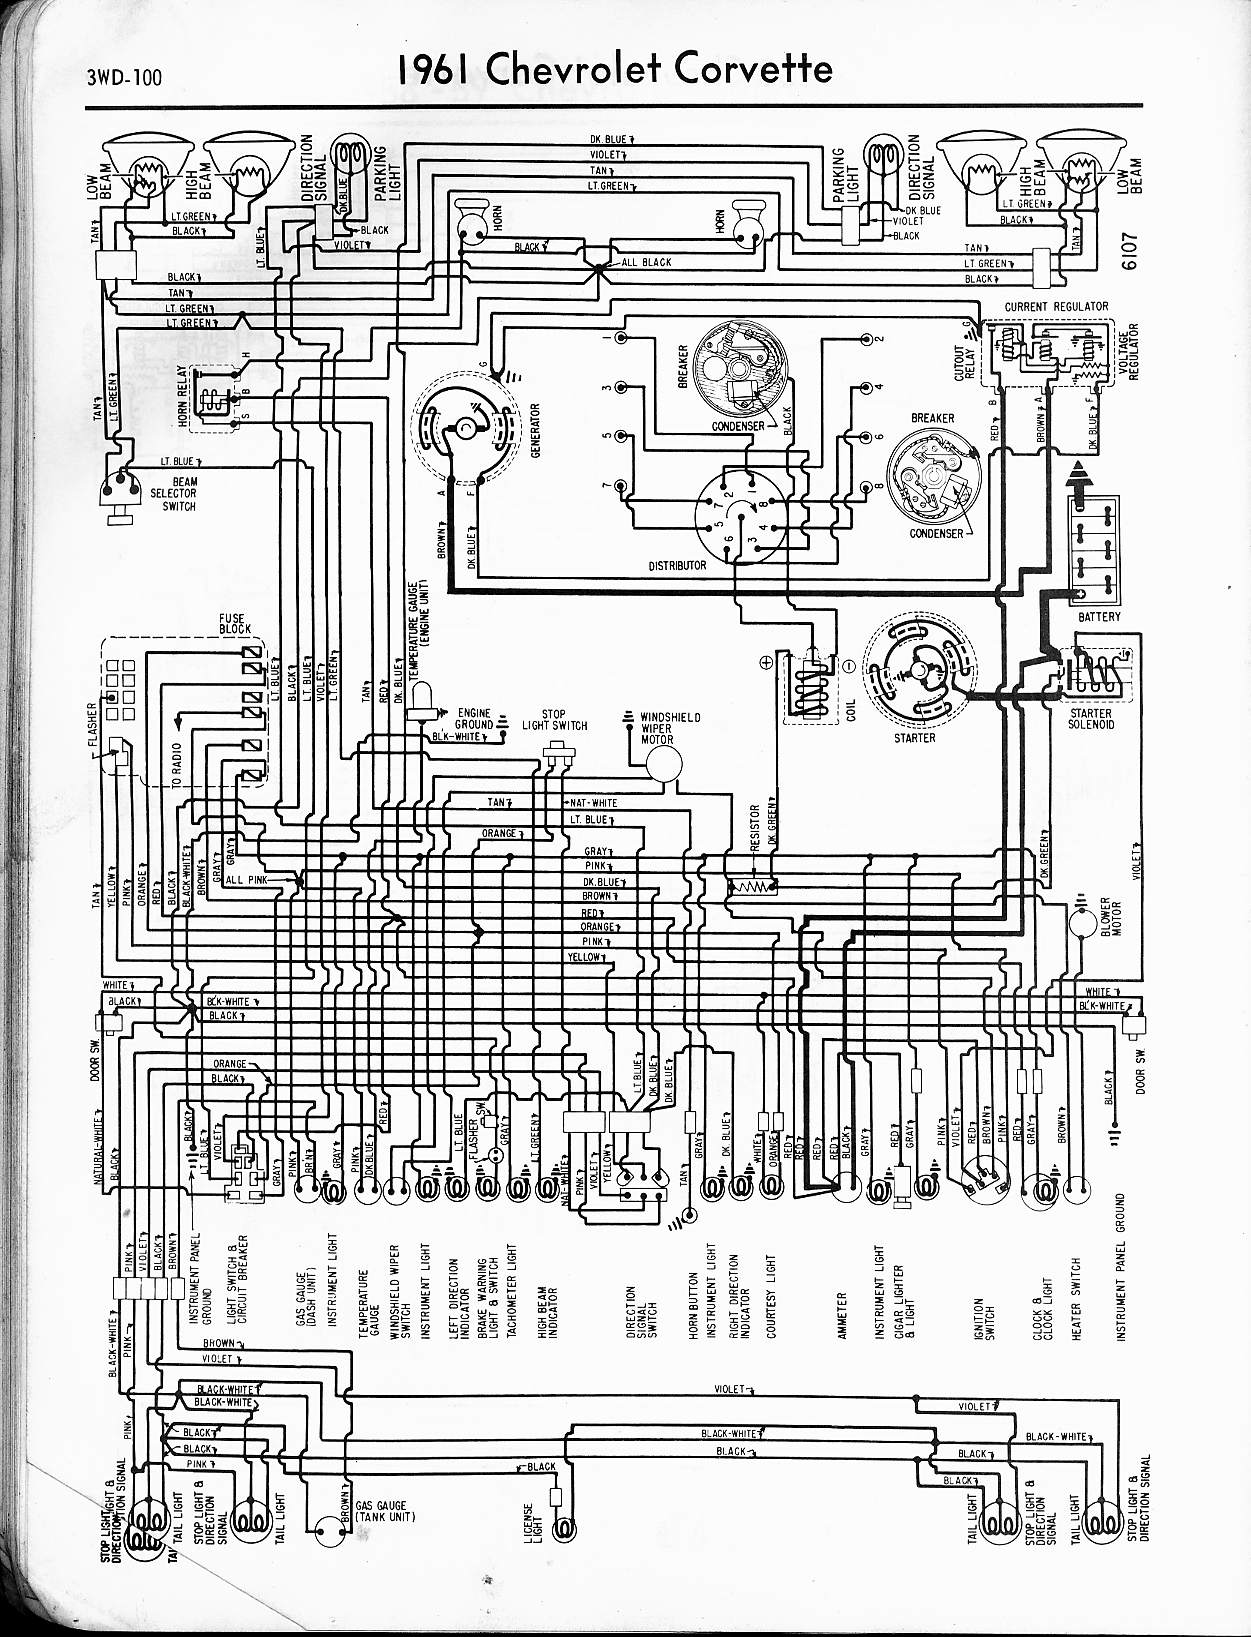 MWireChev61_3WD 100 1976 corvette wiring diagram c3 corvette wiring harness \u2022 free 65 corvette wiring diagram at soozxer.org